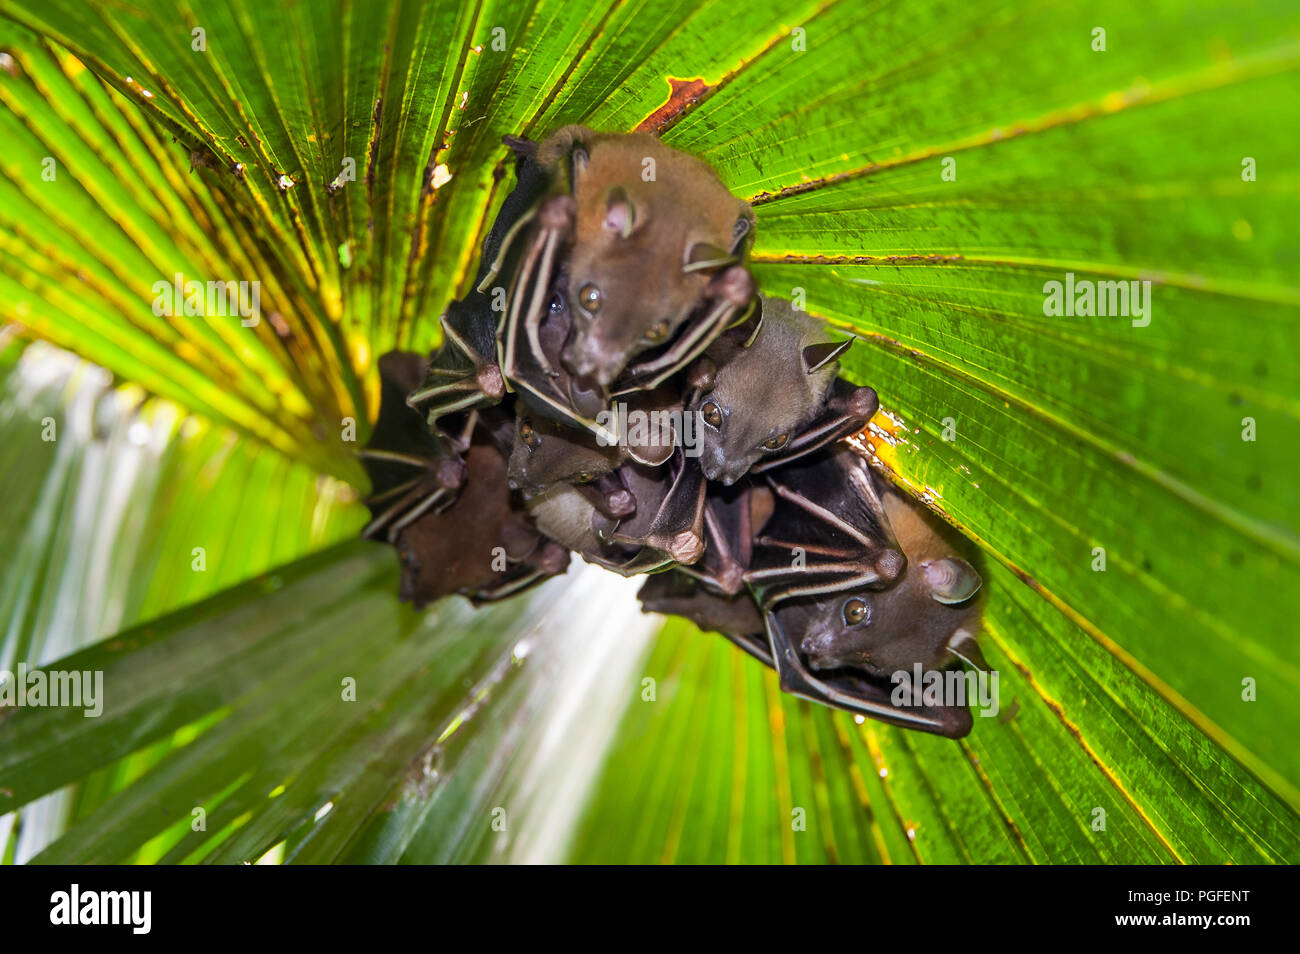 Lesser Dog-faced Fruit Bat (Cyneropterus brachyotis). Also called Short-nosed or Common Fruit Bat - a family hides under a green leafy palm tree Stock Photo